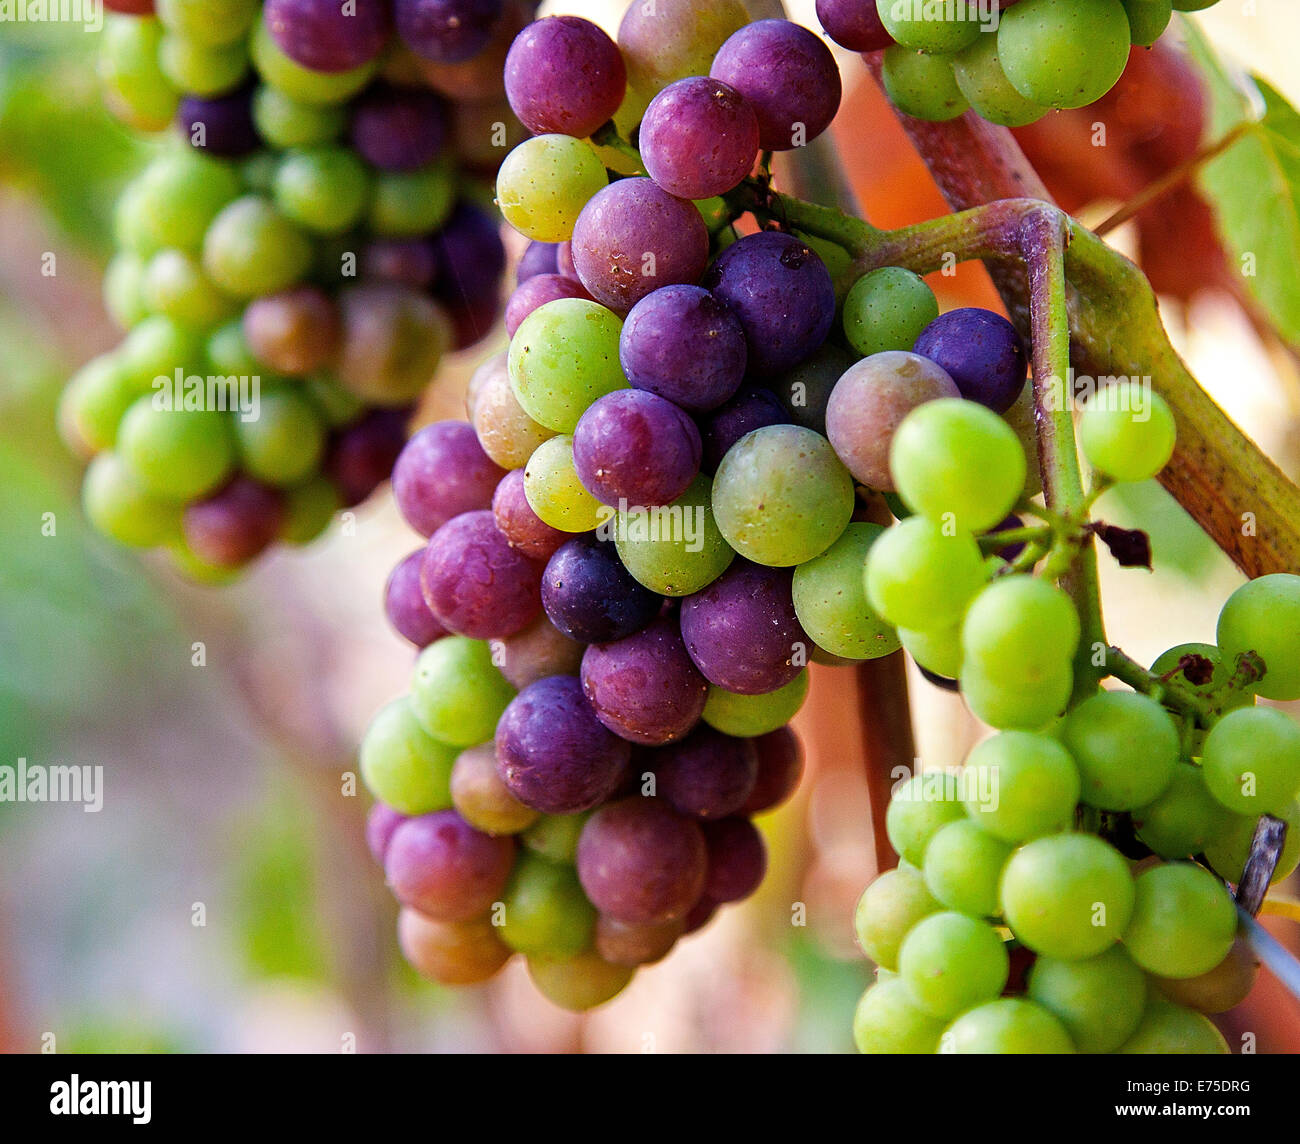 Light Hall Vineyards, grapes, Winery, Prince Edward County, grapes on the vine, wine, vines, close up, harvest, - Stock Image